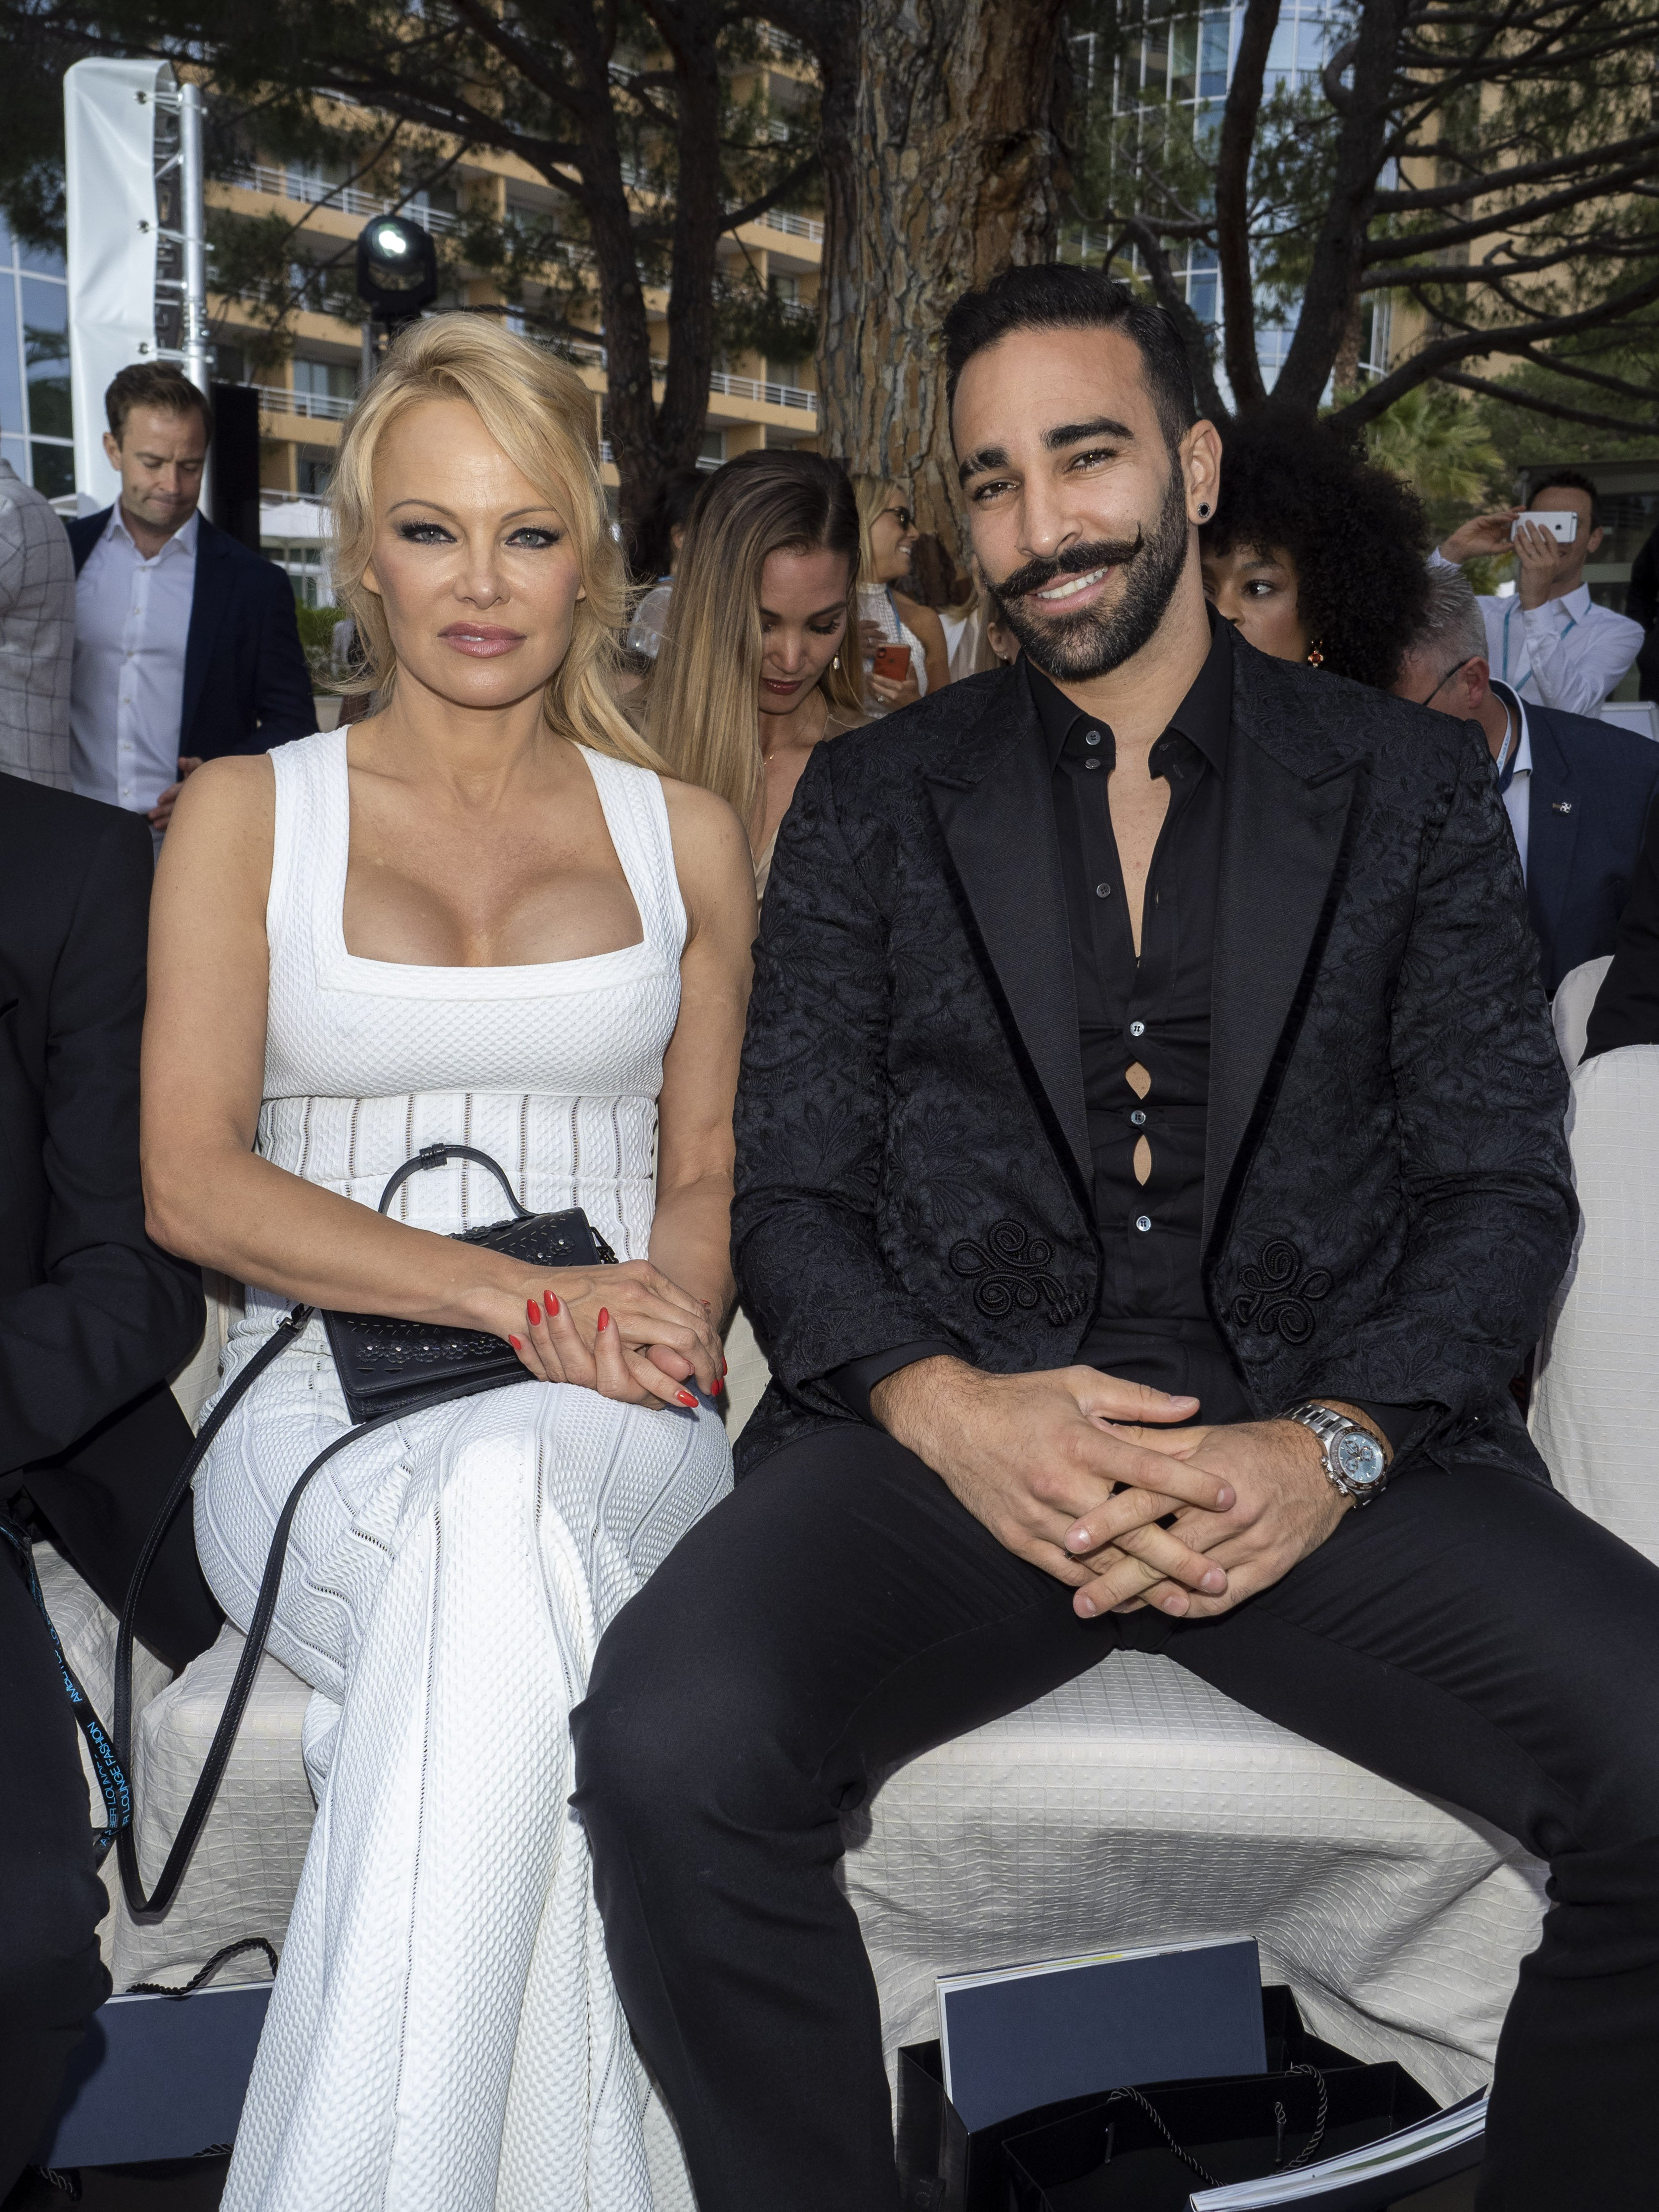 Pamela Anderson and Adil Rami attend Amber Lounge 2019 Fashion Show. | Source: Getty Image